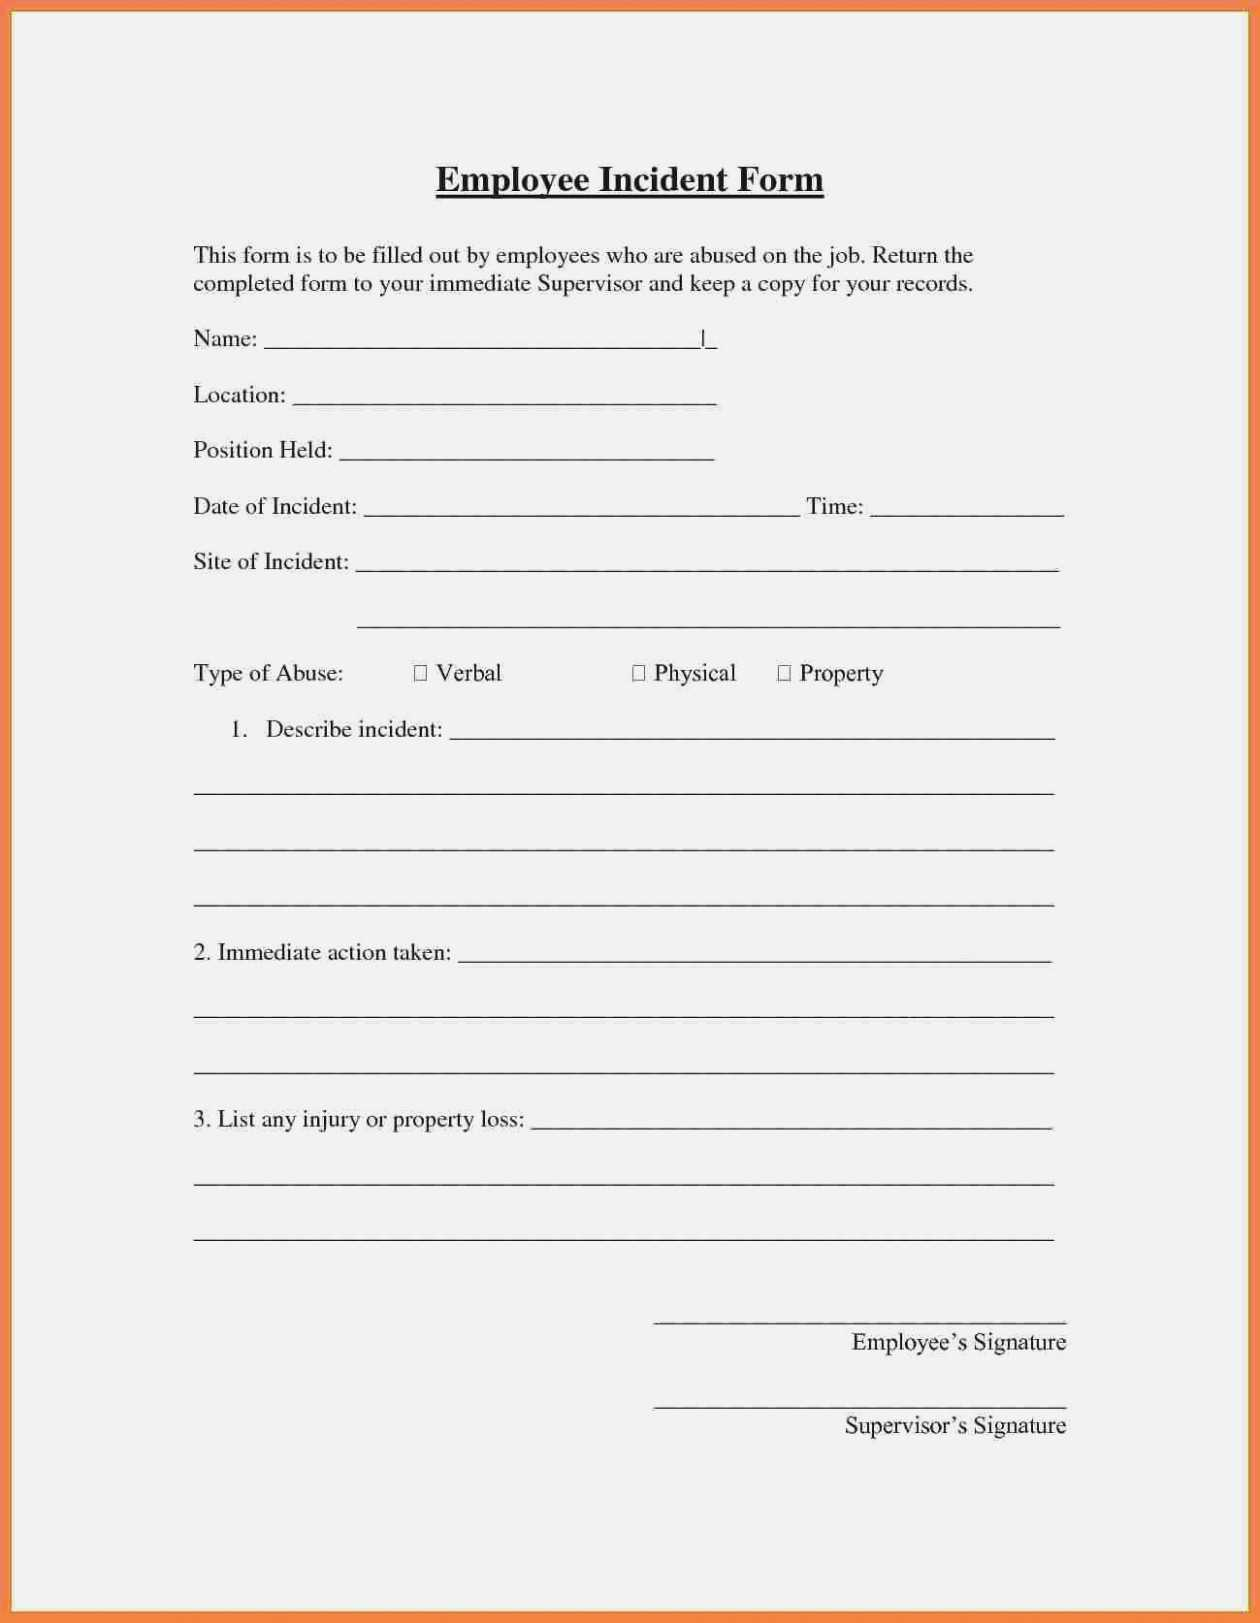 Incident Report Letter Sample In Workplace | Manswikstrom.se regarding Ohs Incident Report Template Free